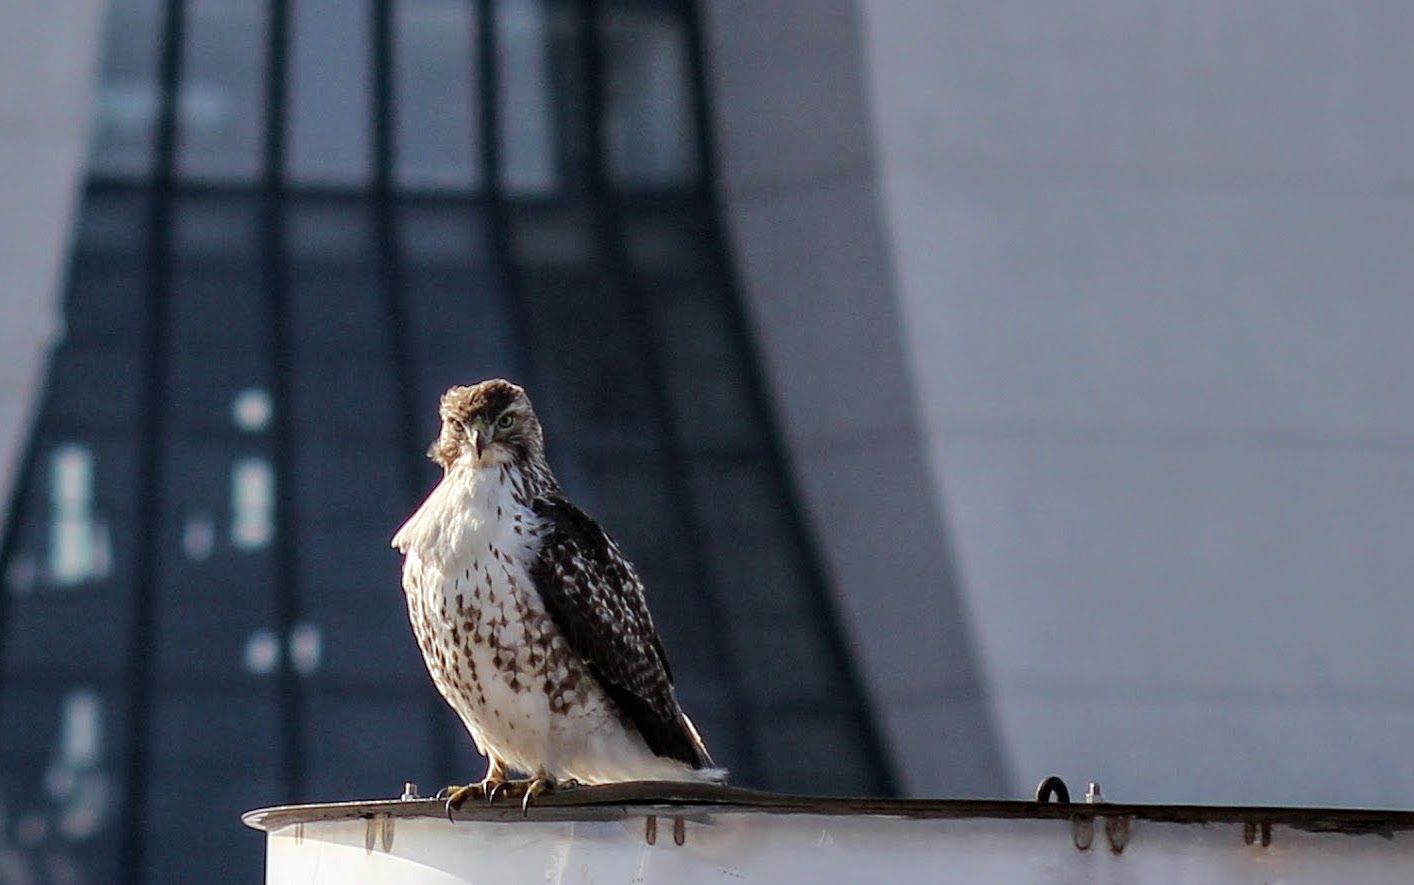 One of Fermilab's resident hawks perches by Wilson Hall. Photo: Jeff Artel, WDRS